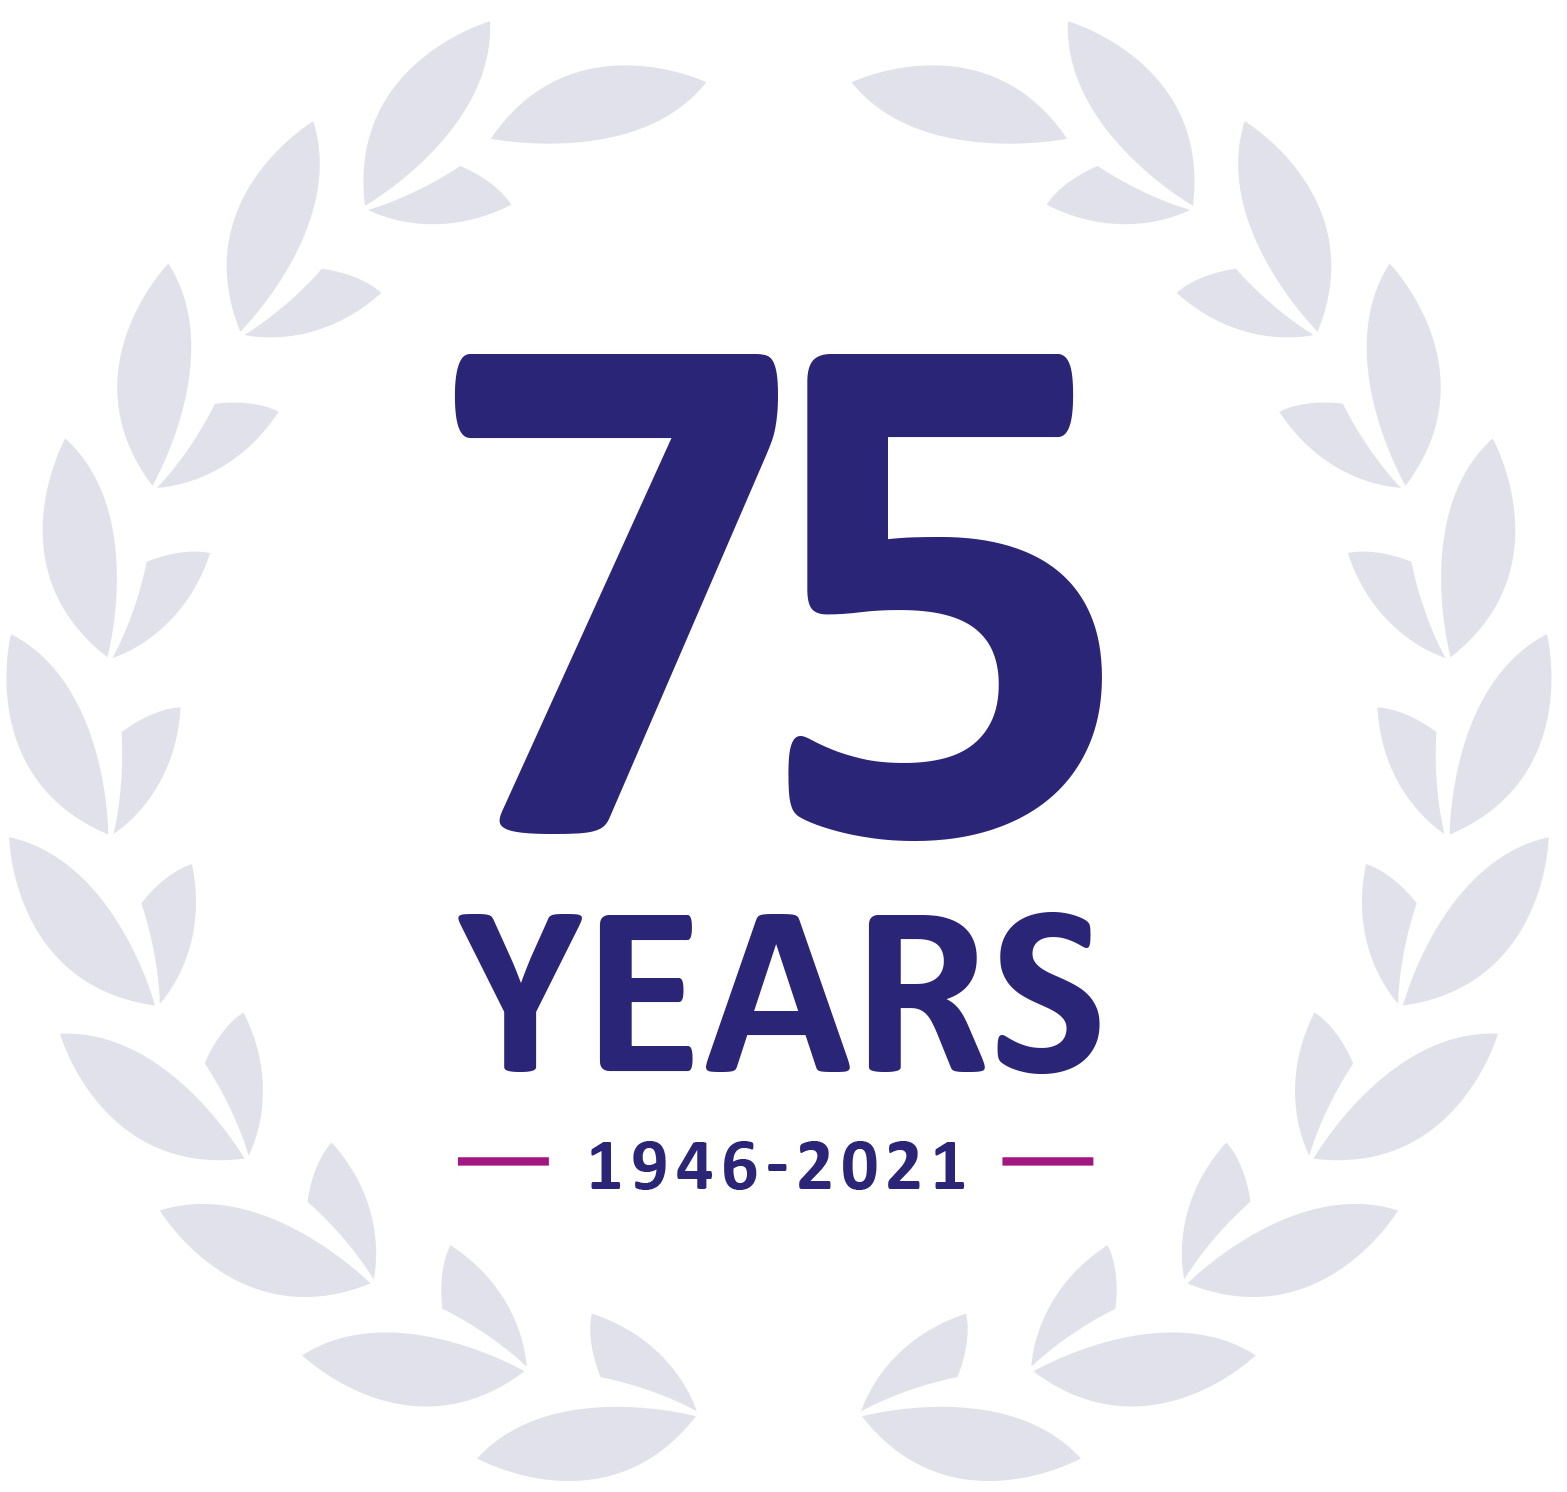 TPT Retirement Solutions 75 years anniversary 1946-2021